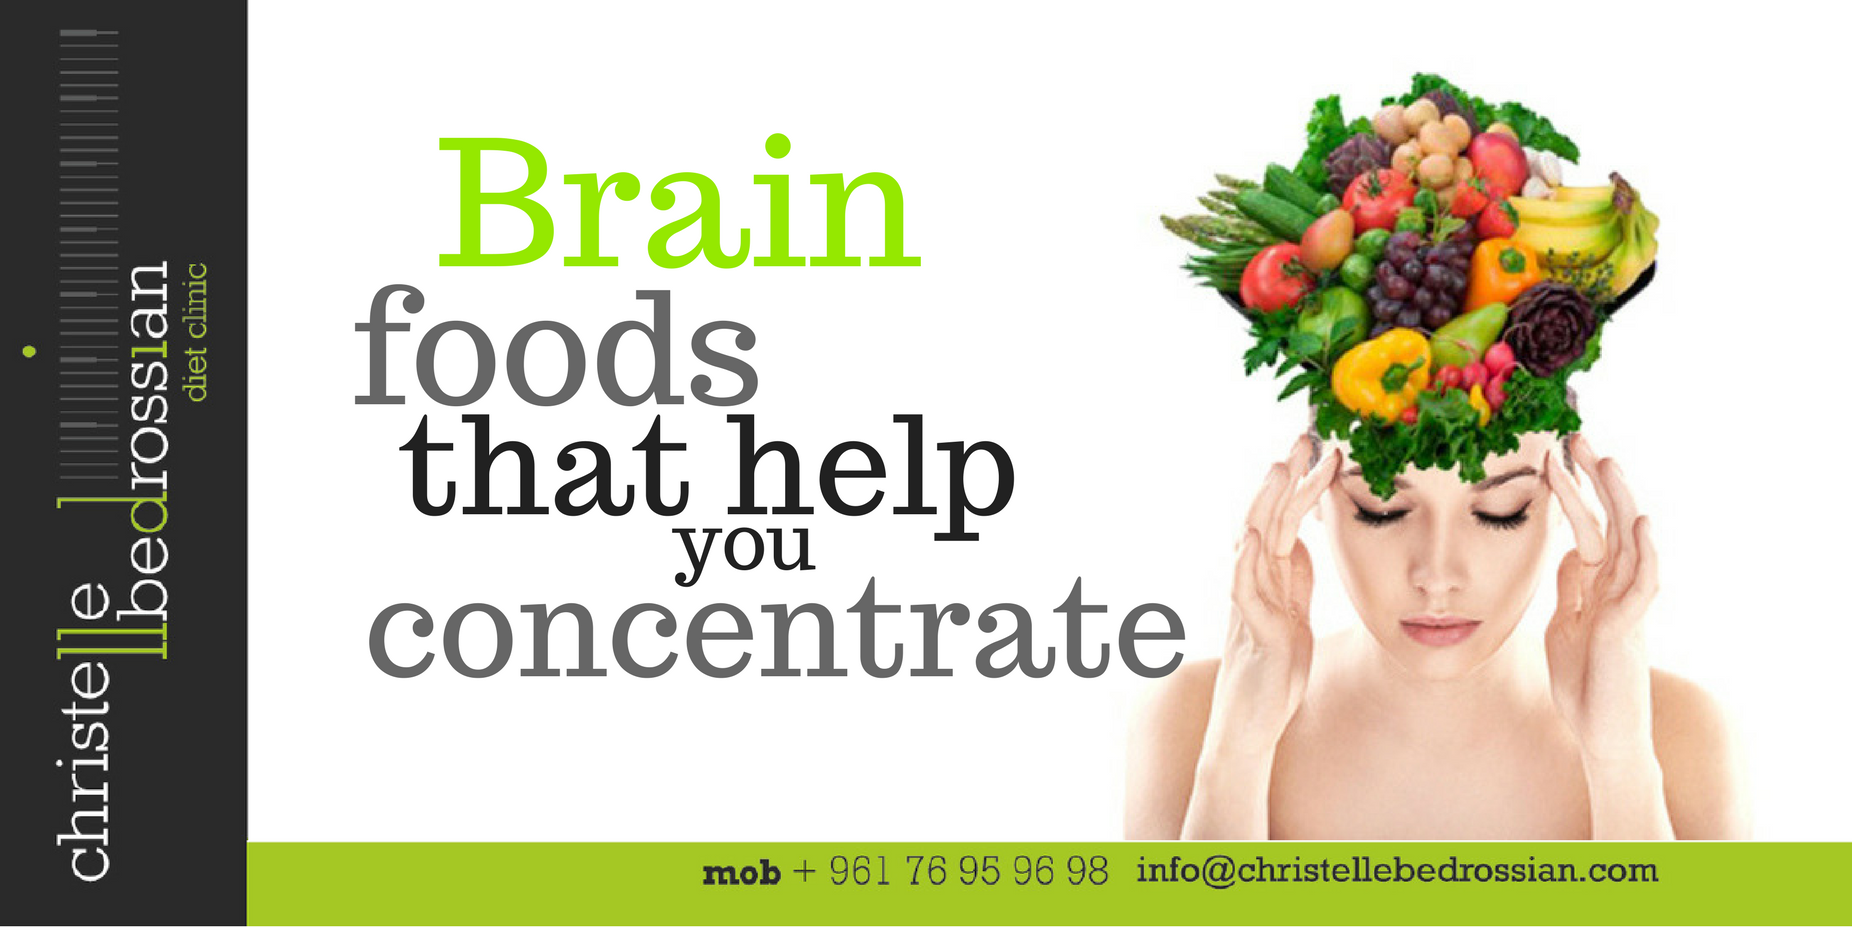 Increase concentration supplement image 2